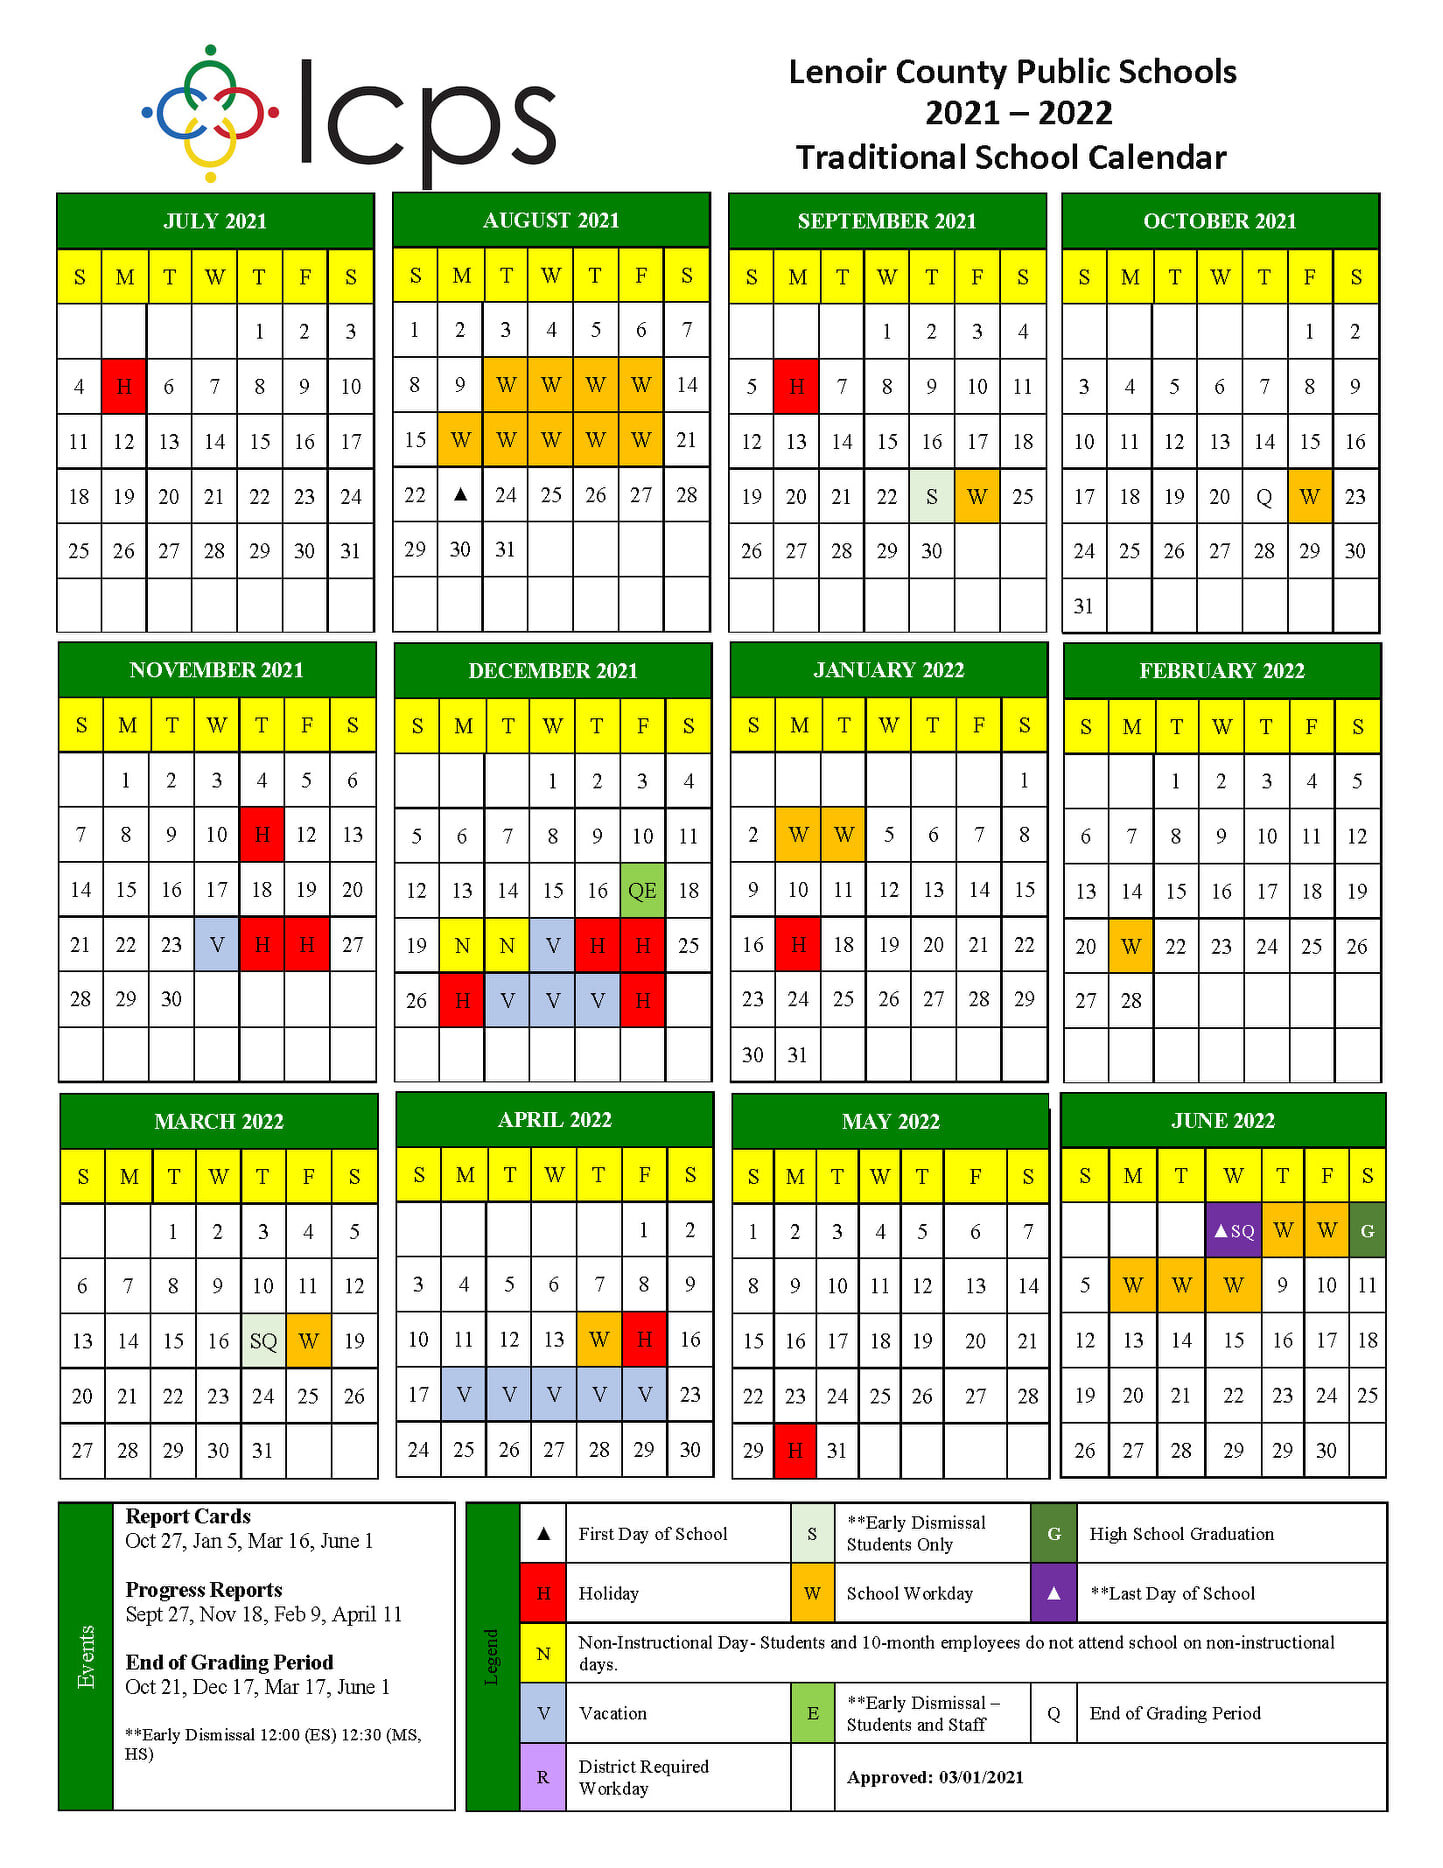 Lcc Calendar 2022.Hoping For A Normal School Year Lcps Sets Calendar For 2021 2022 Neuse News